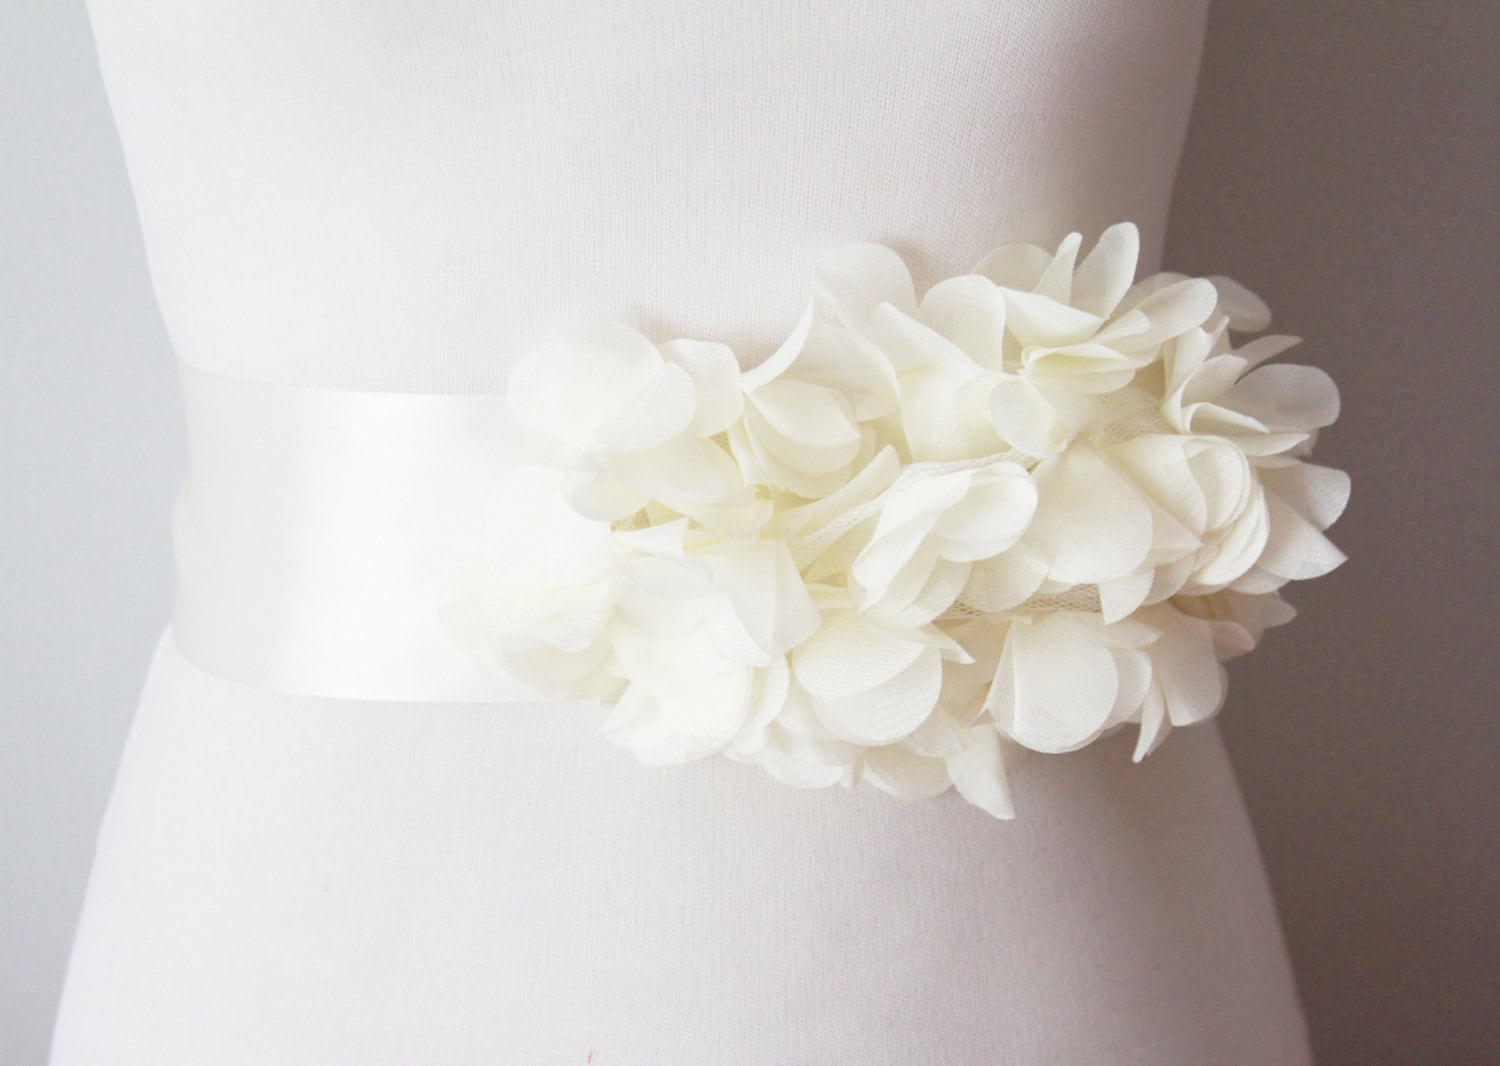 Bridal Ivory Chiffon Flower Sash Posh Ribbon Belt Vintage